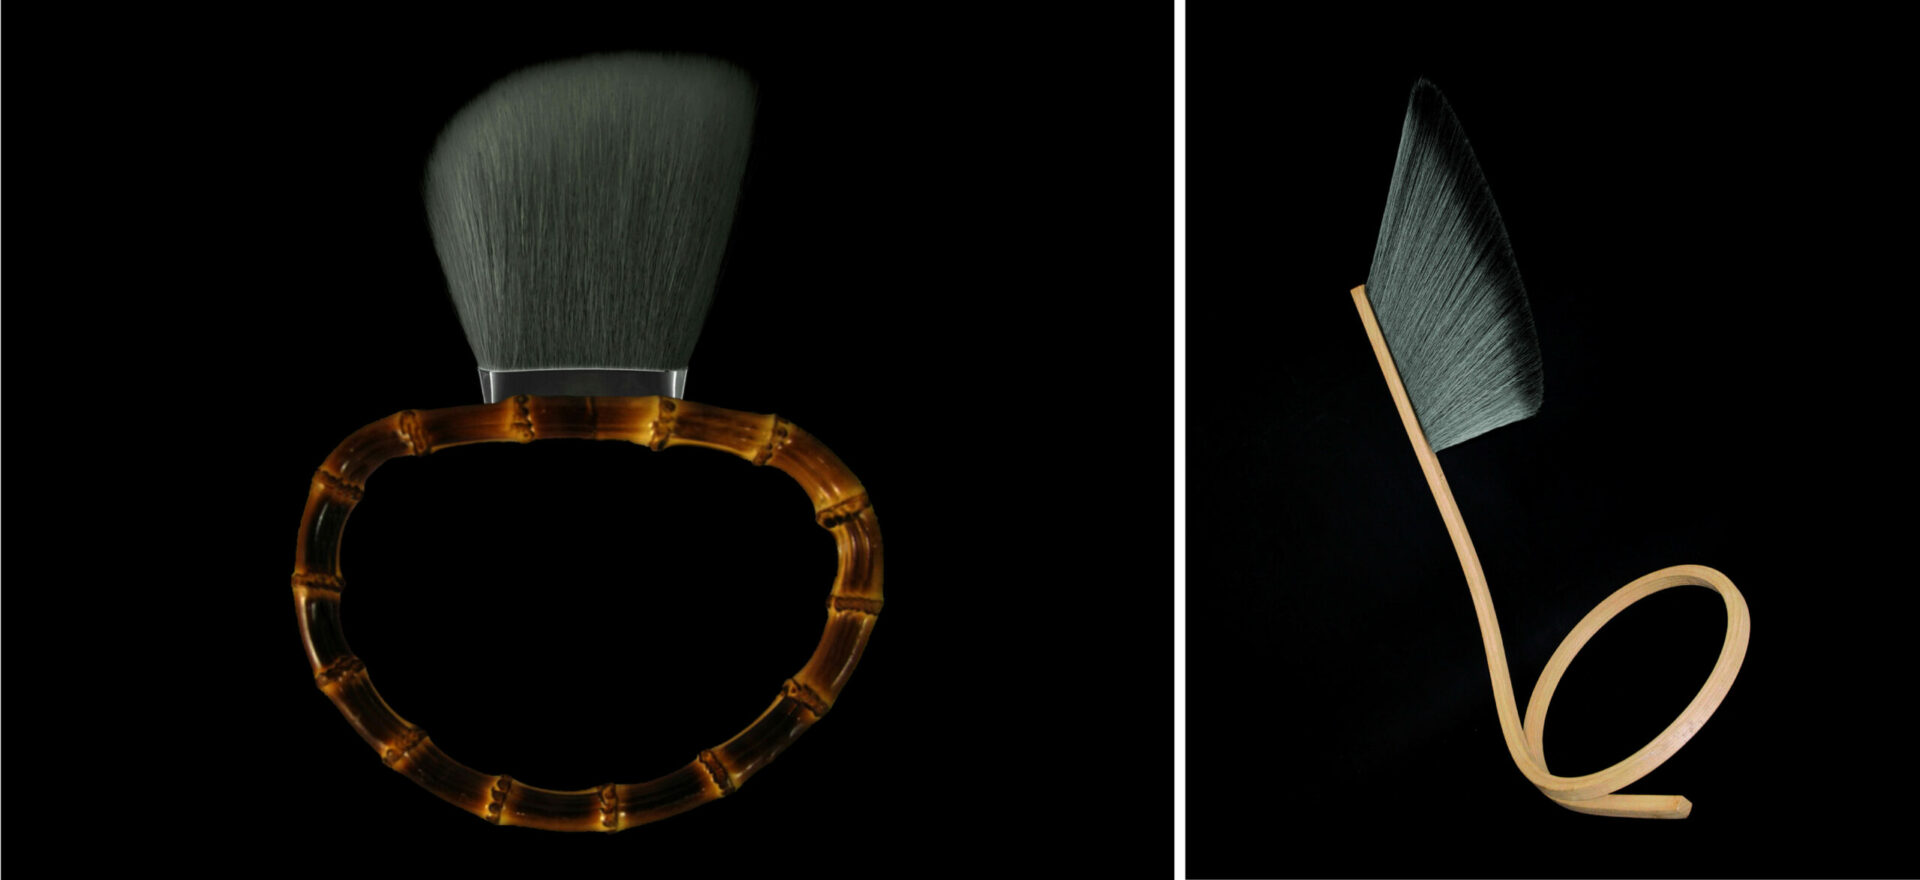 Yuubi brushes_Limited Collection_Makeup brushes_Mario Trimarchi Design_Products Artworks